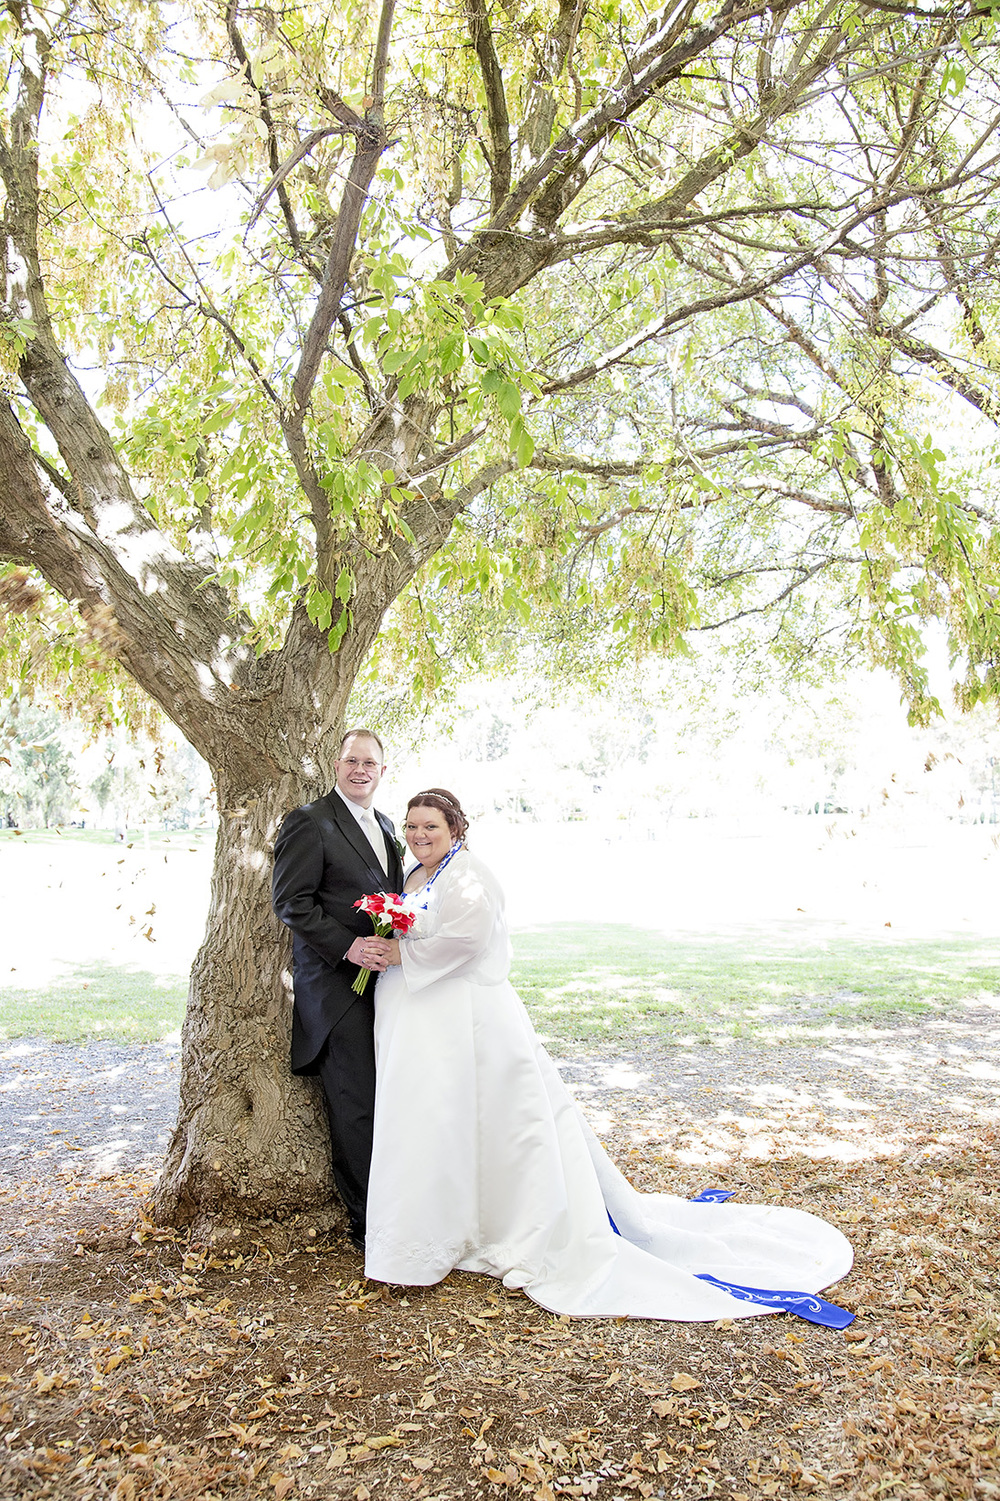 Sferas Modbury wedding 16.jpg